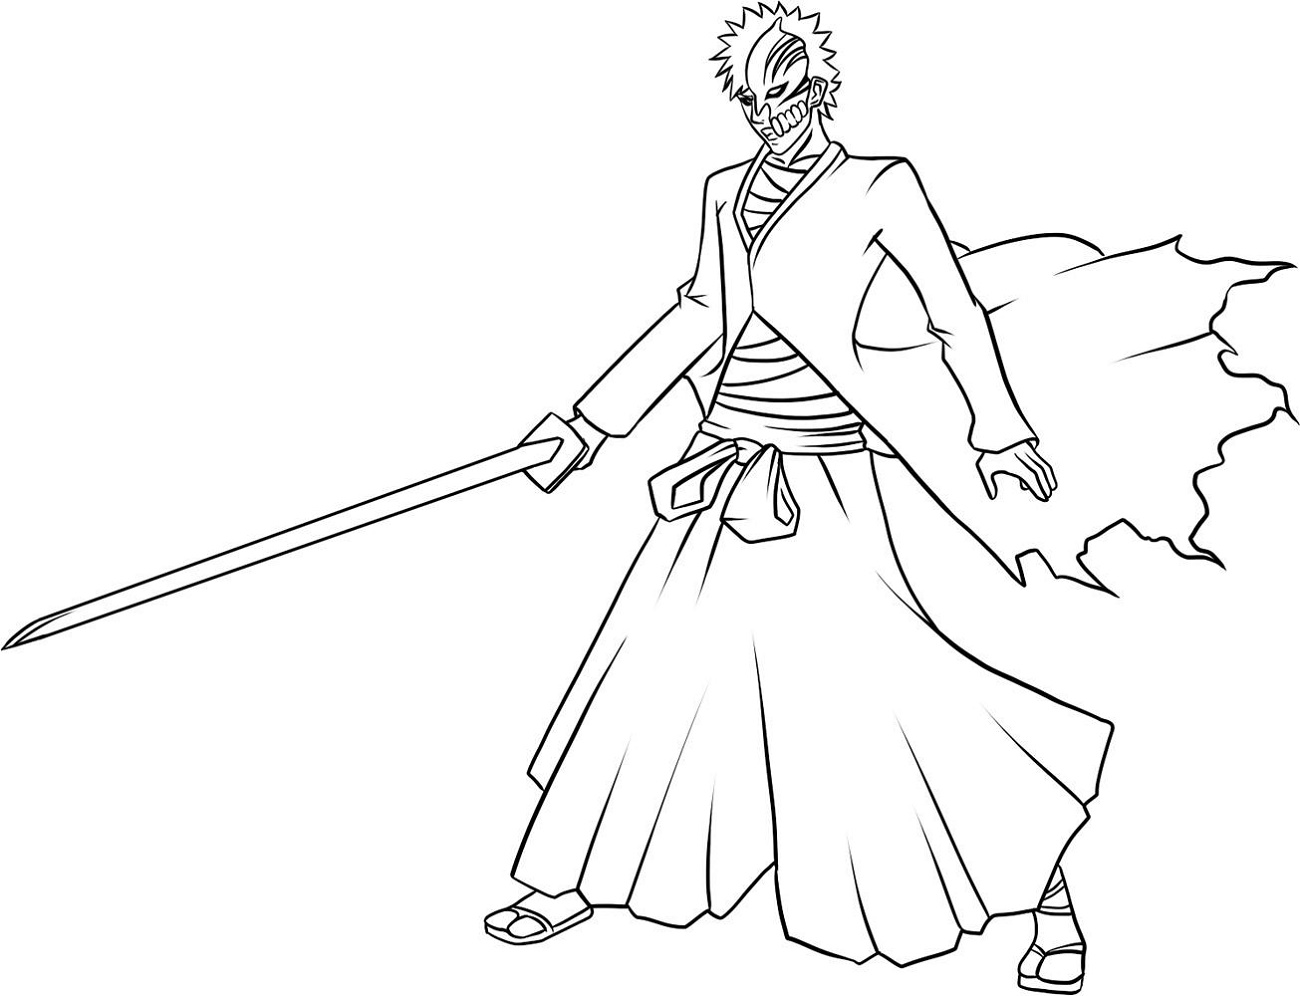 Bleach Coloring Pages Printable